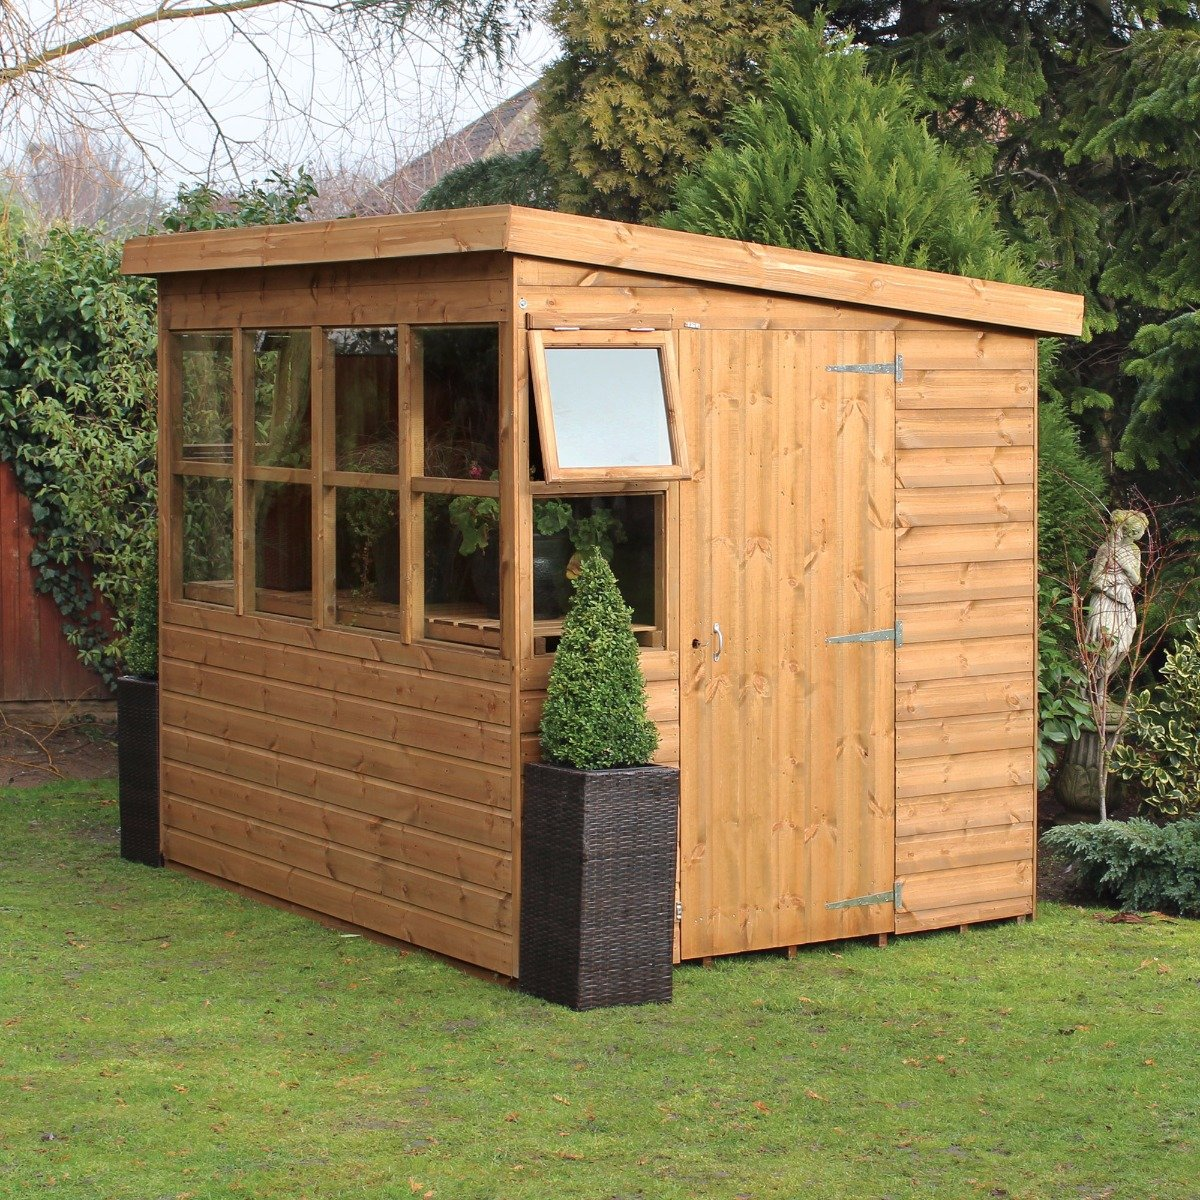 Shed Pictures Design: The Best Potting Shed Designs